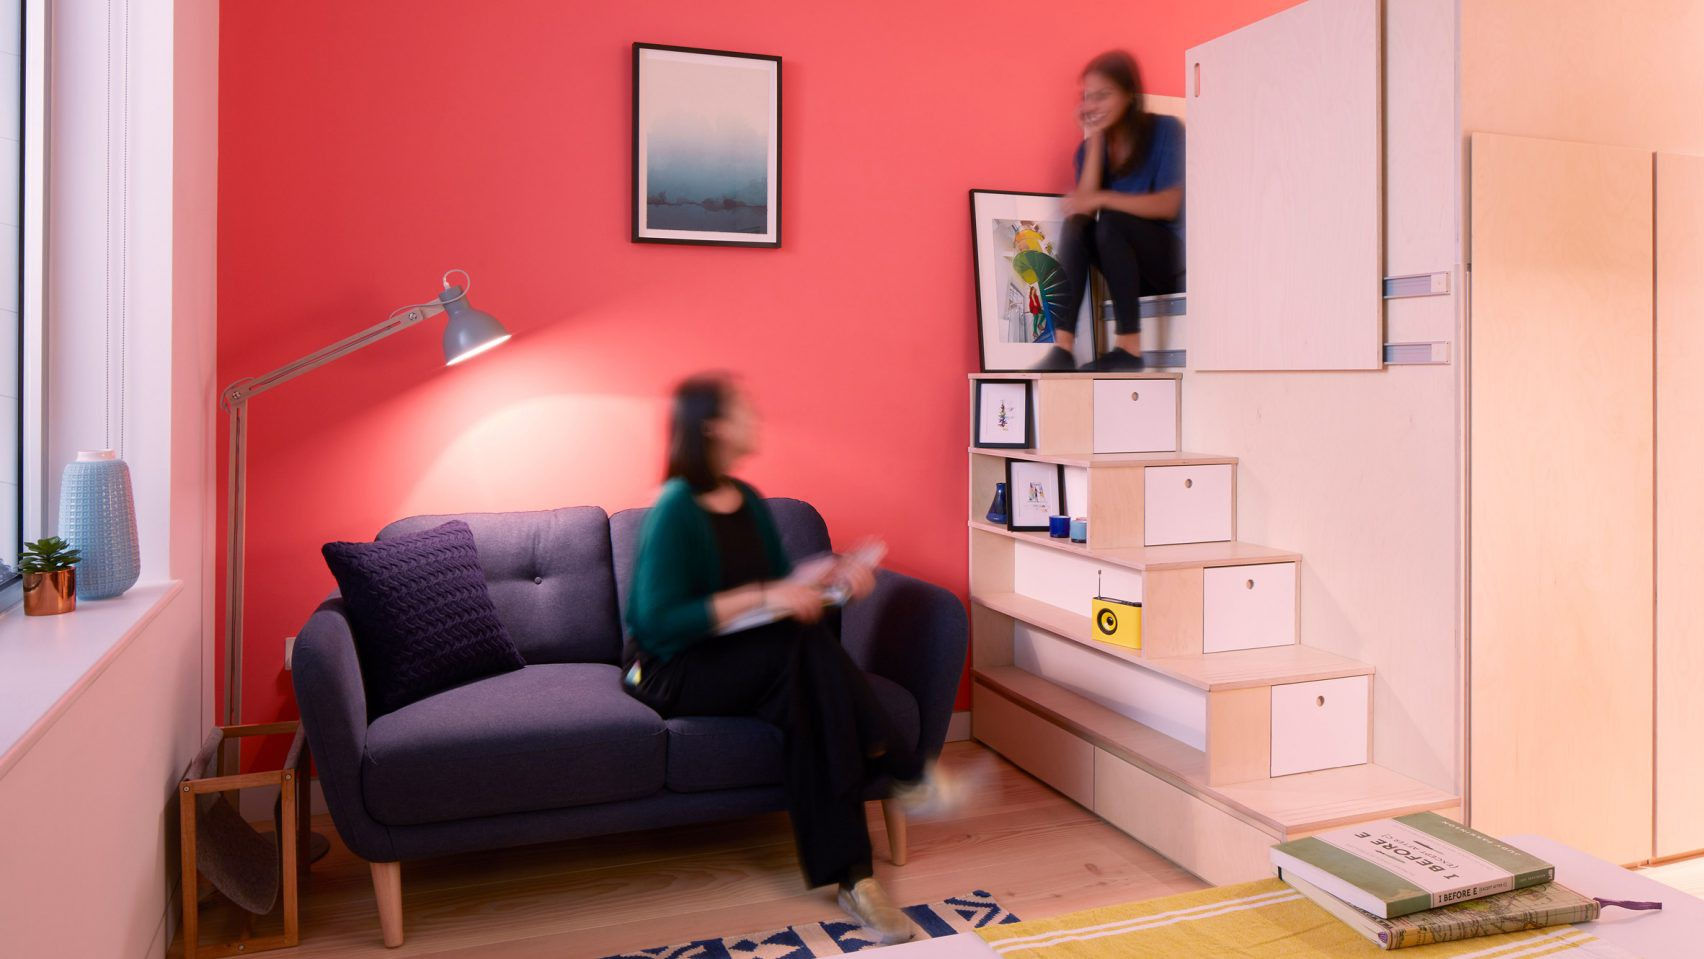 compact-living-ab-rogers-design-architecture-residential-micro-apartments_dezeen_hero-1-1704x959